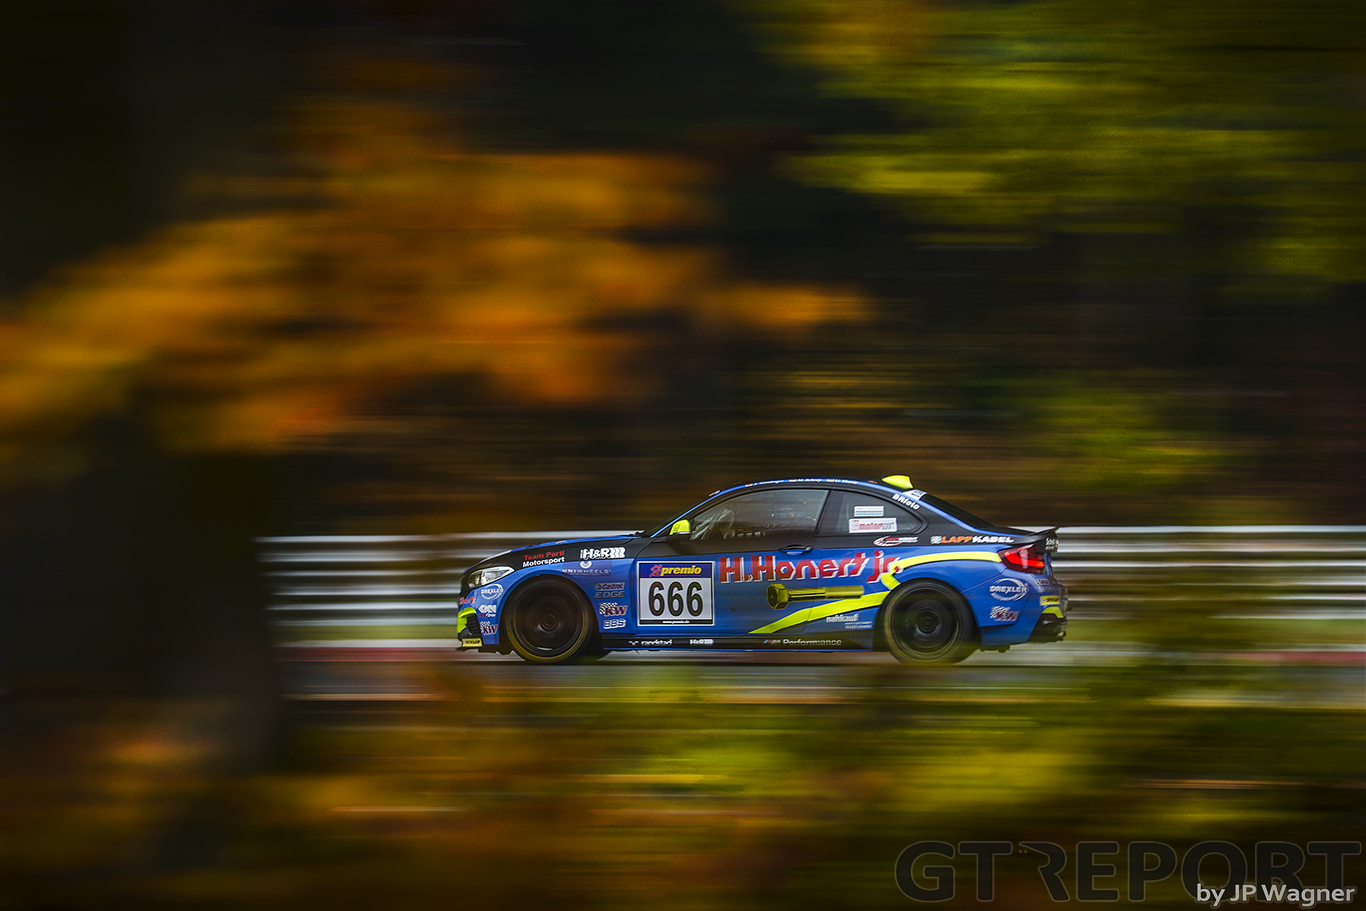 VLN10 gallery: Killing giants, Pt.II